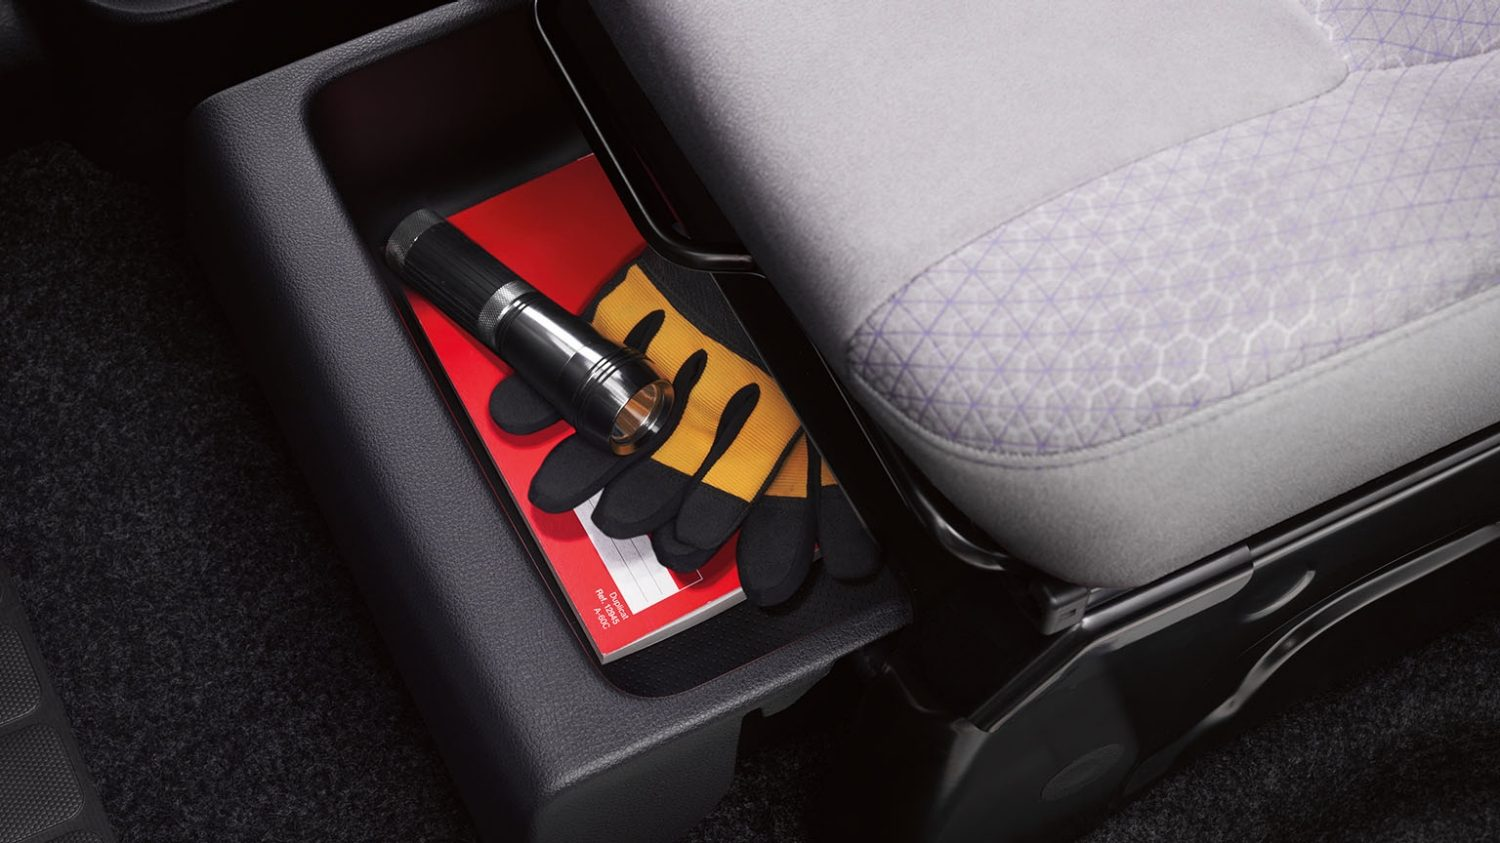 Nissan e-NV200 - Under-seat storage drawer